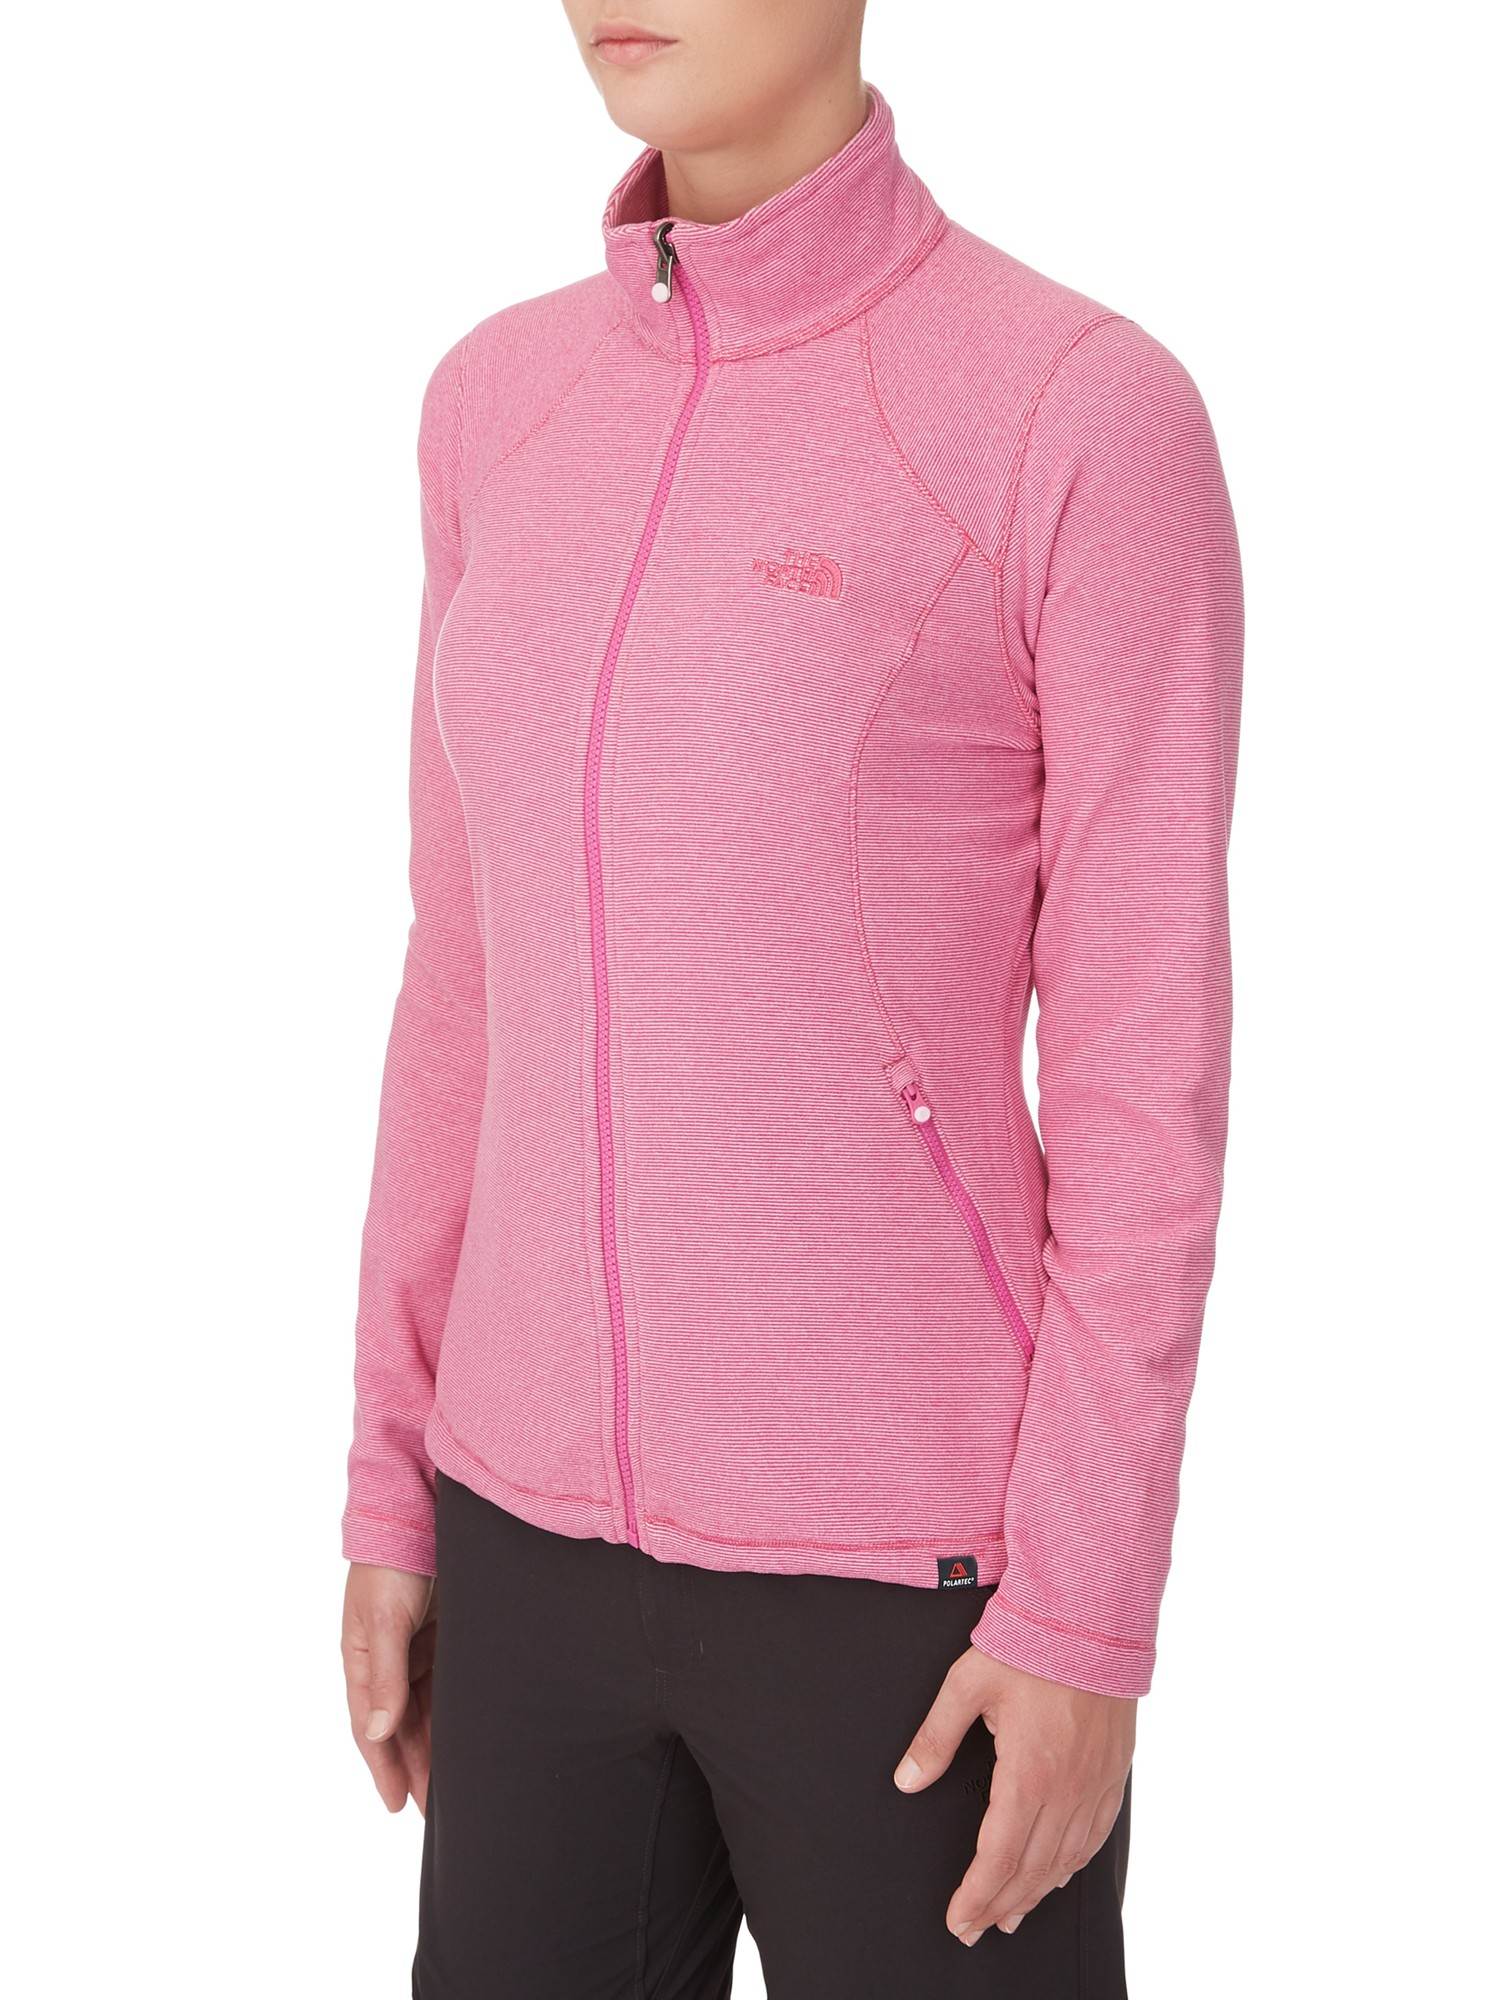 62375b58bc8 The North Face 100 Glacier Full Zip Fleece in Pink - Lyst